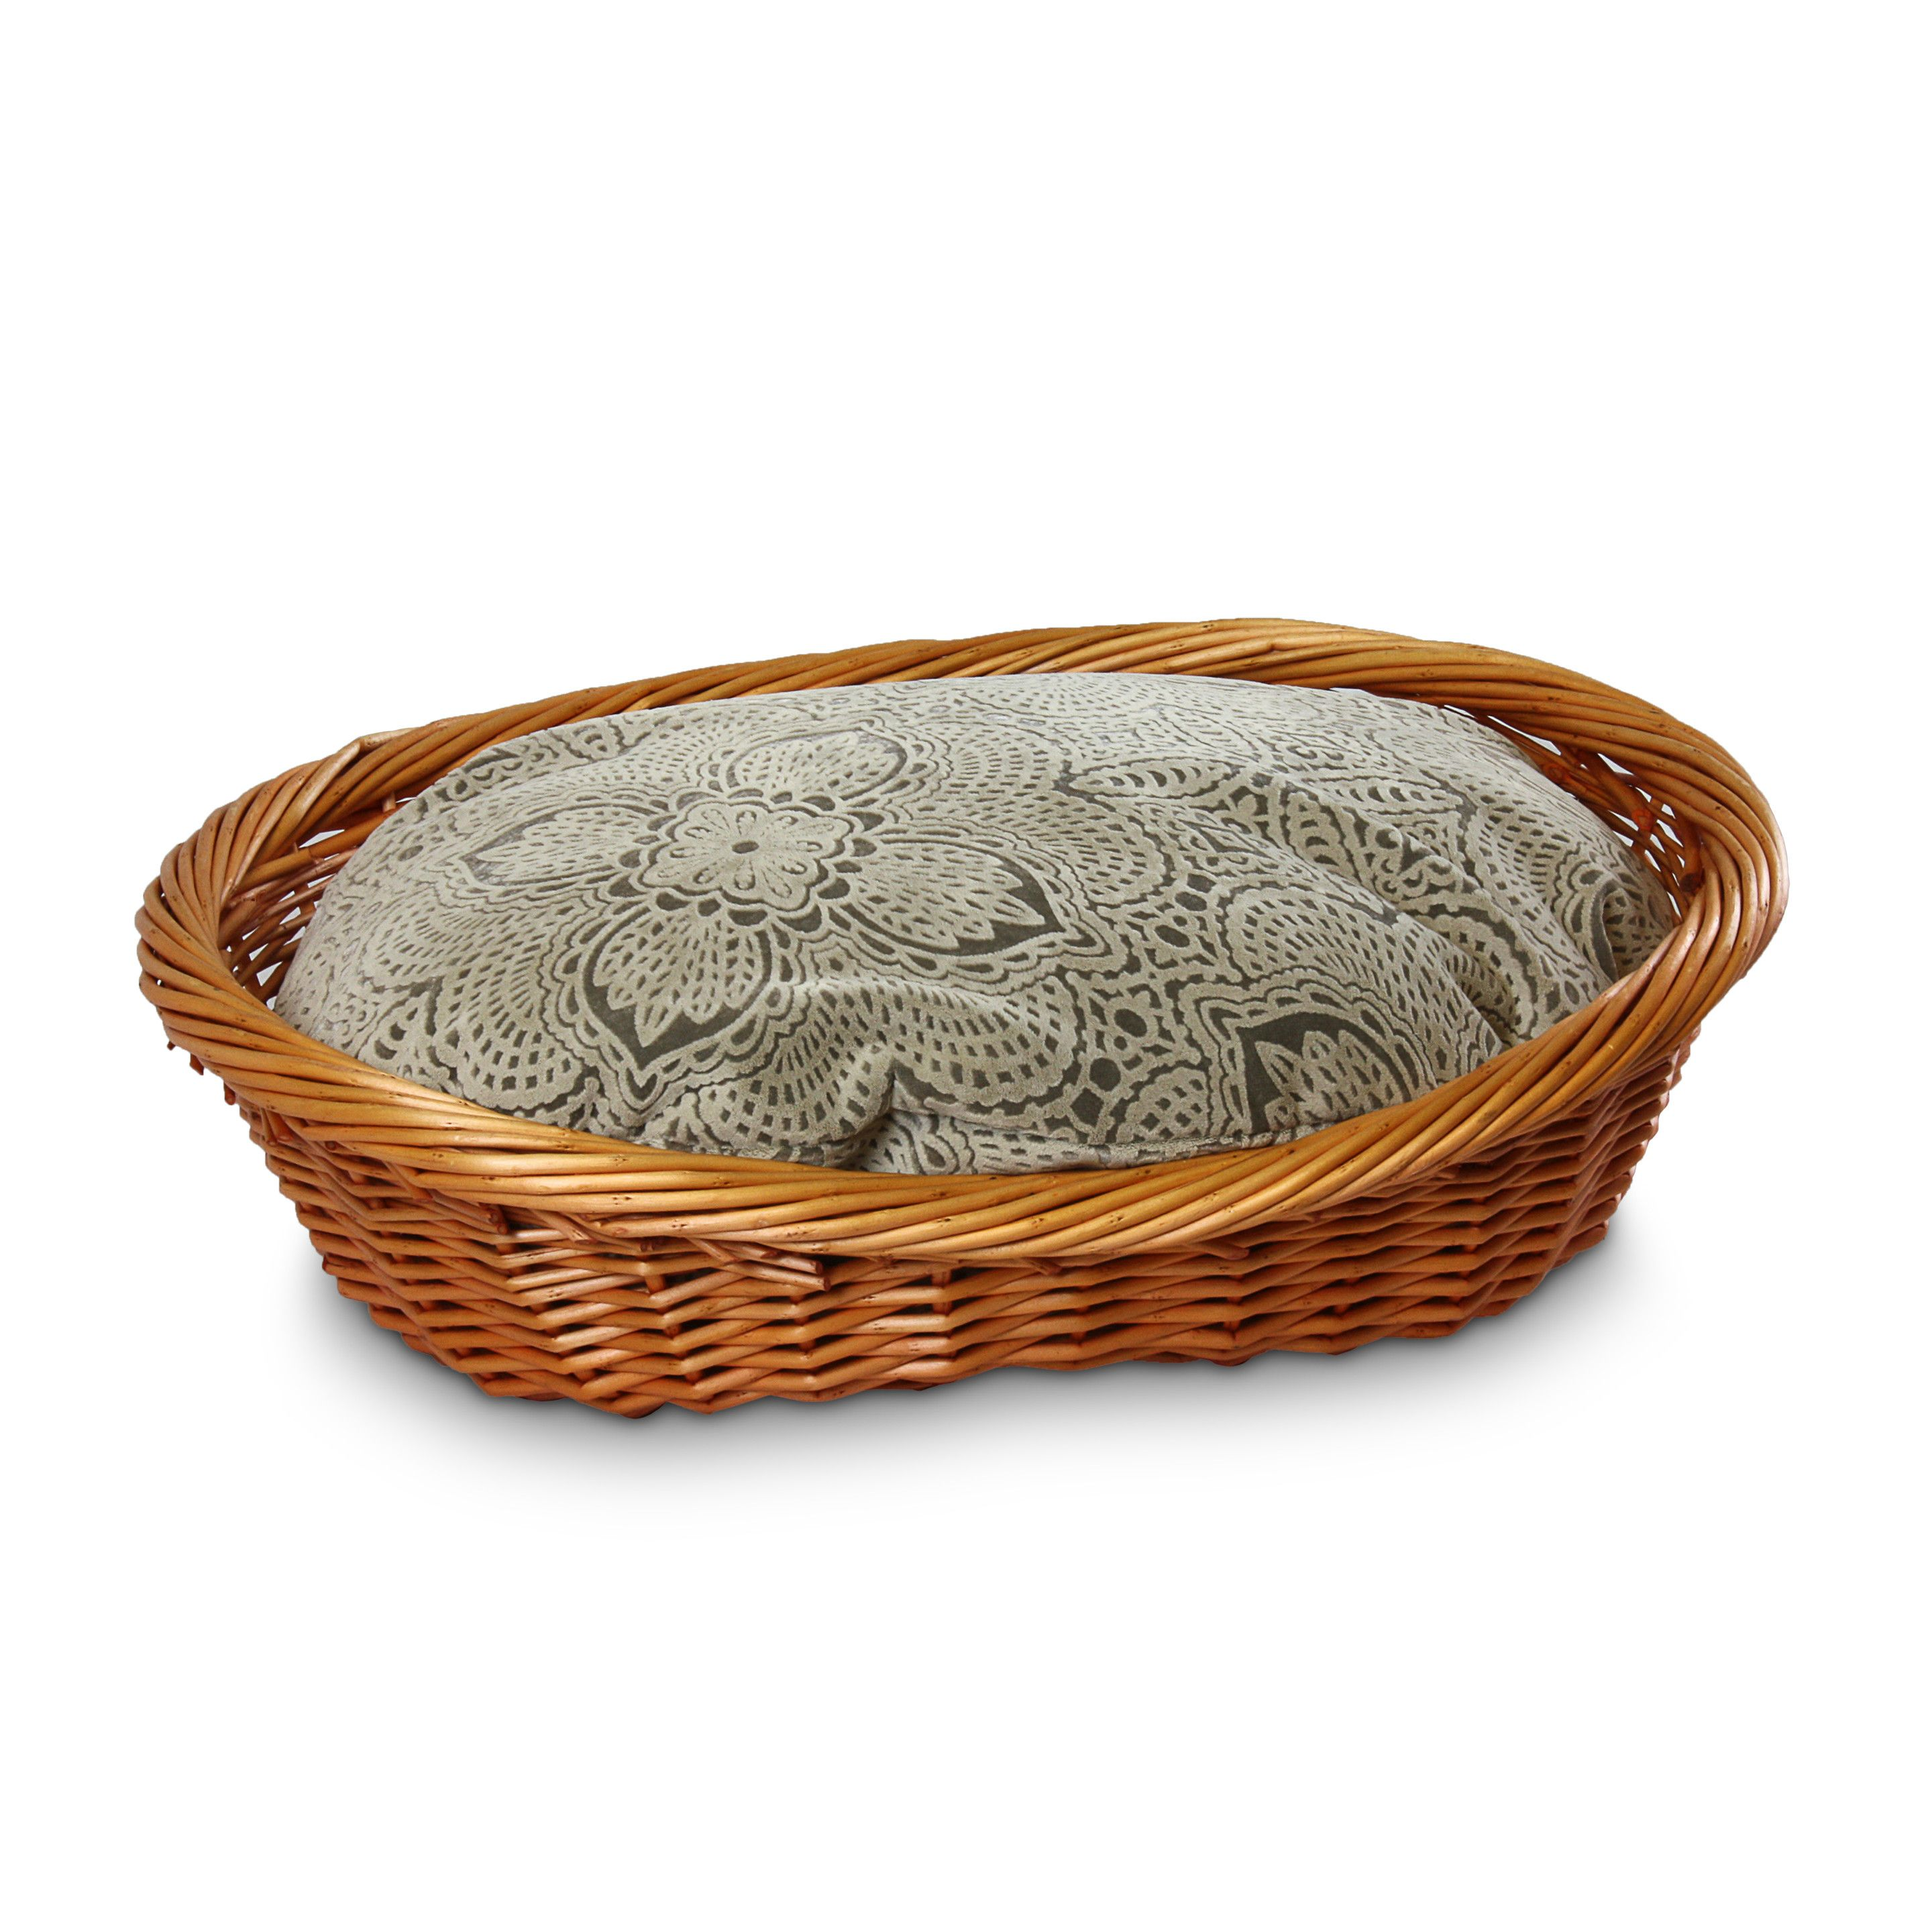 You'll love the Luxury Wicker Dog Basket and Bed at